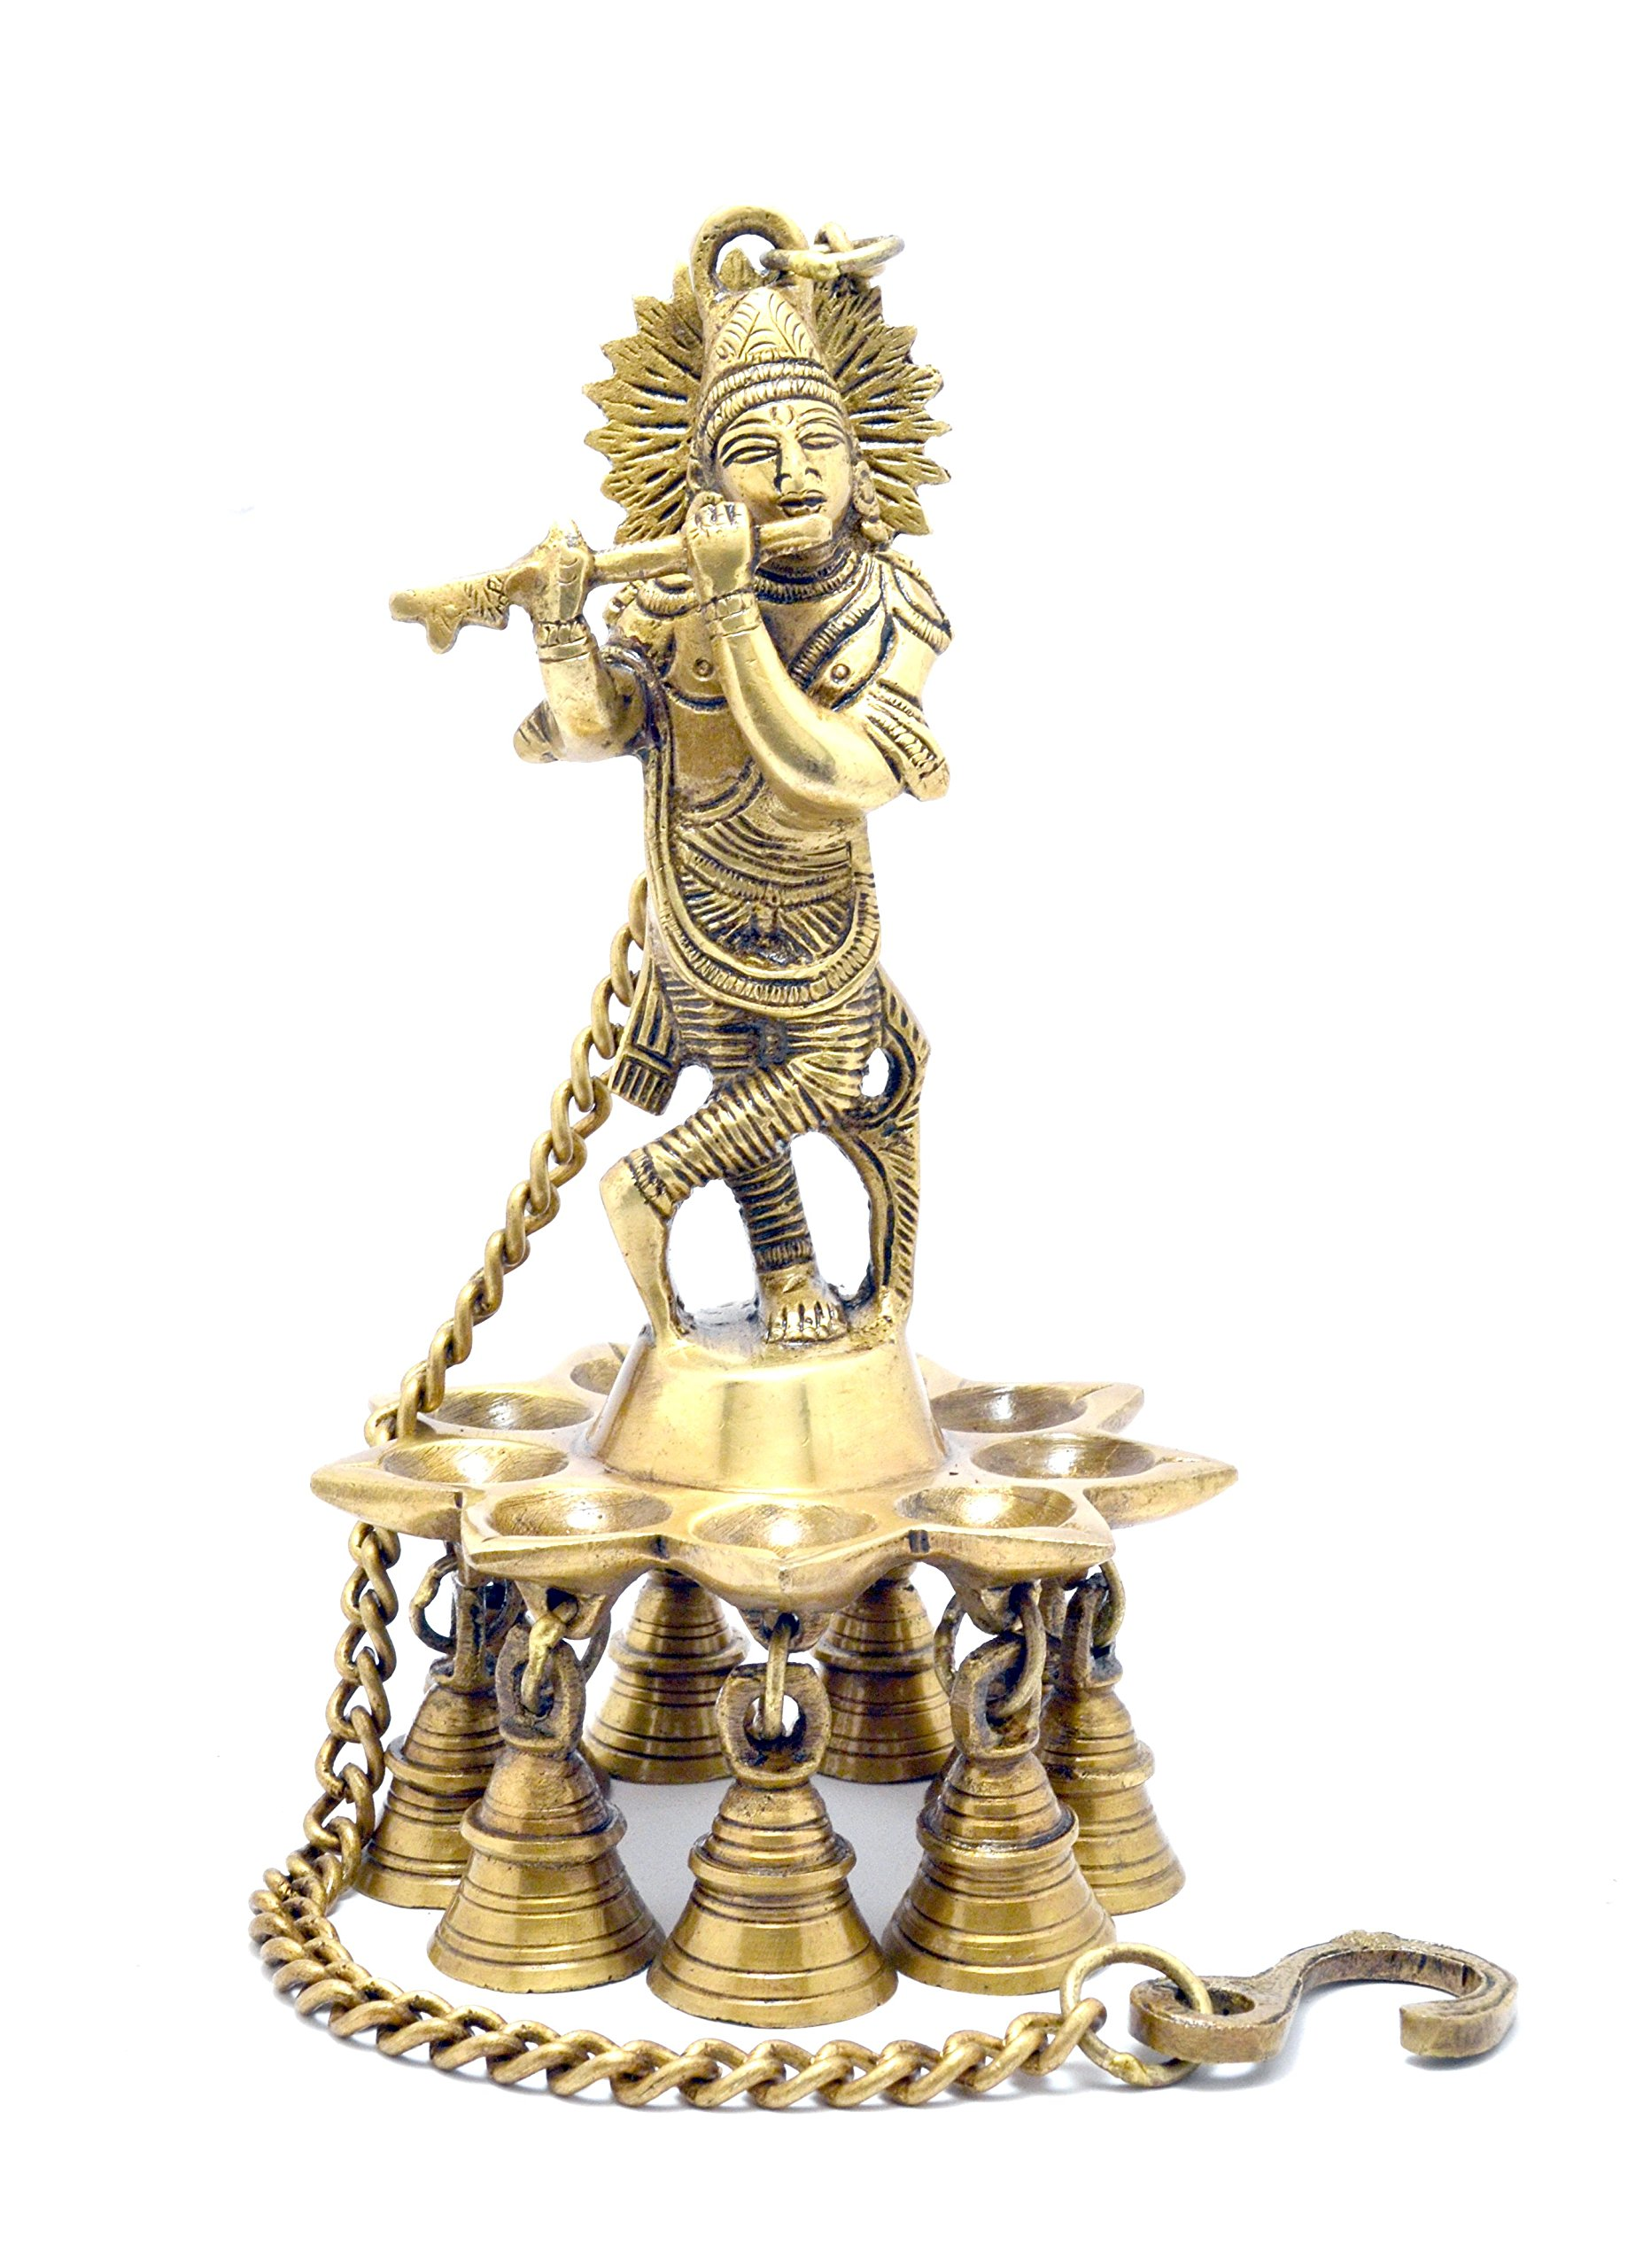 Two Moustaches Krishna Hanging Brass Diya | Home Decor | by Two Moustaches (Image #2)